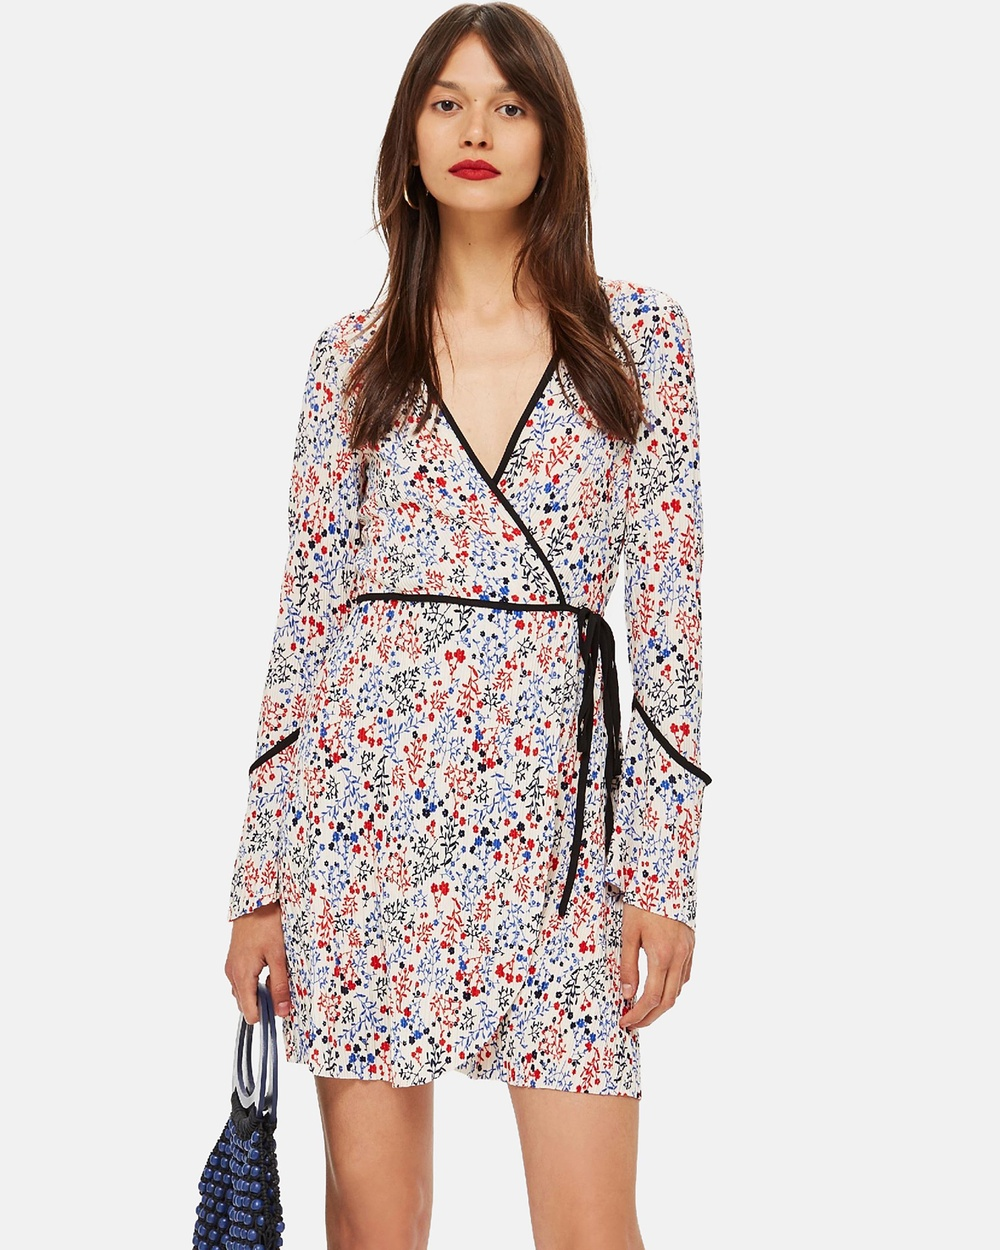 TOPSHOP Plisse Print Wrap Mini Dress Printed Dresses Multi Plisse Print Wrap Mini Dress